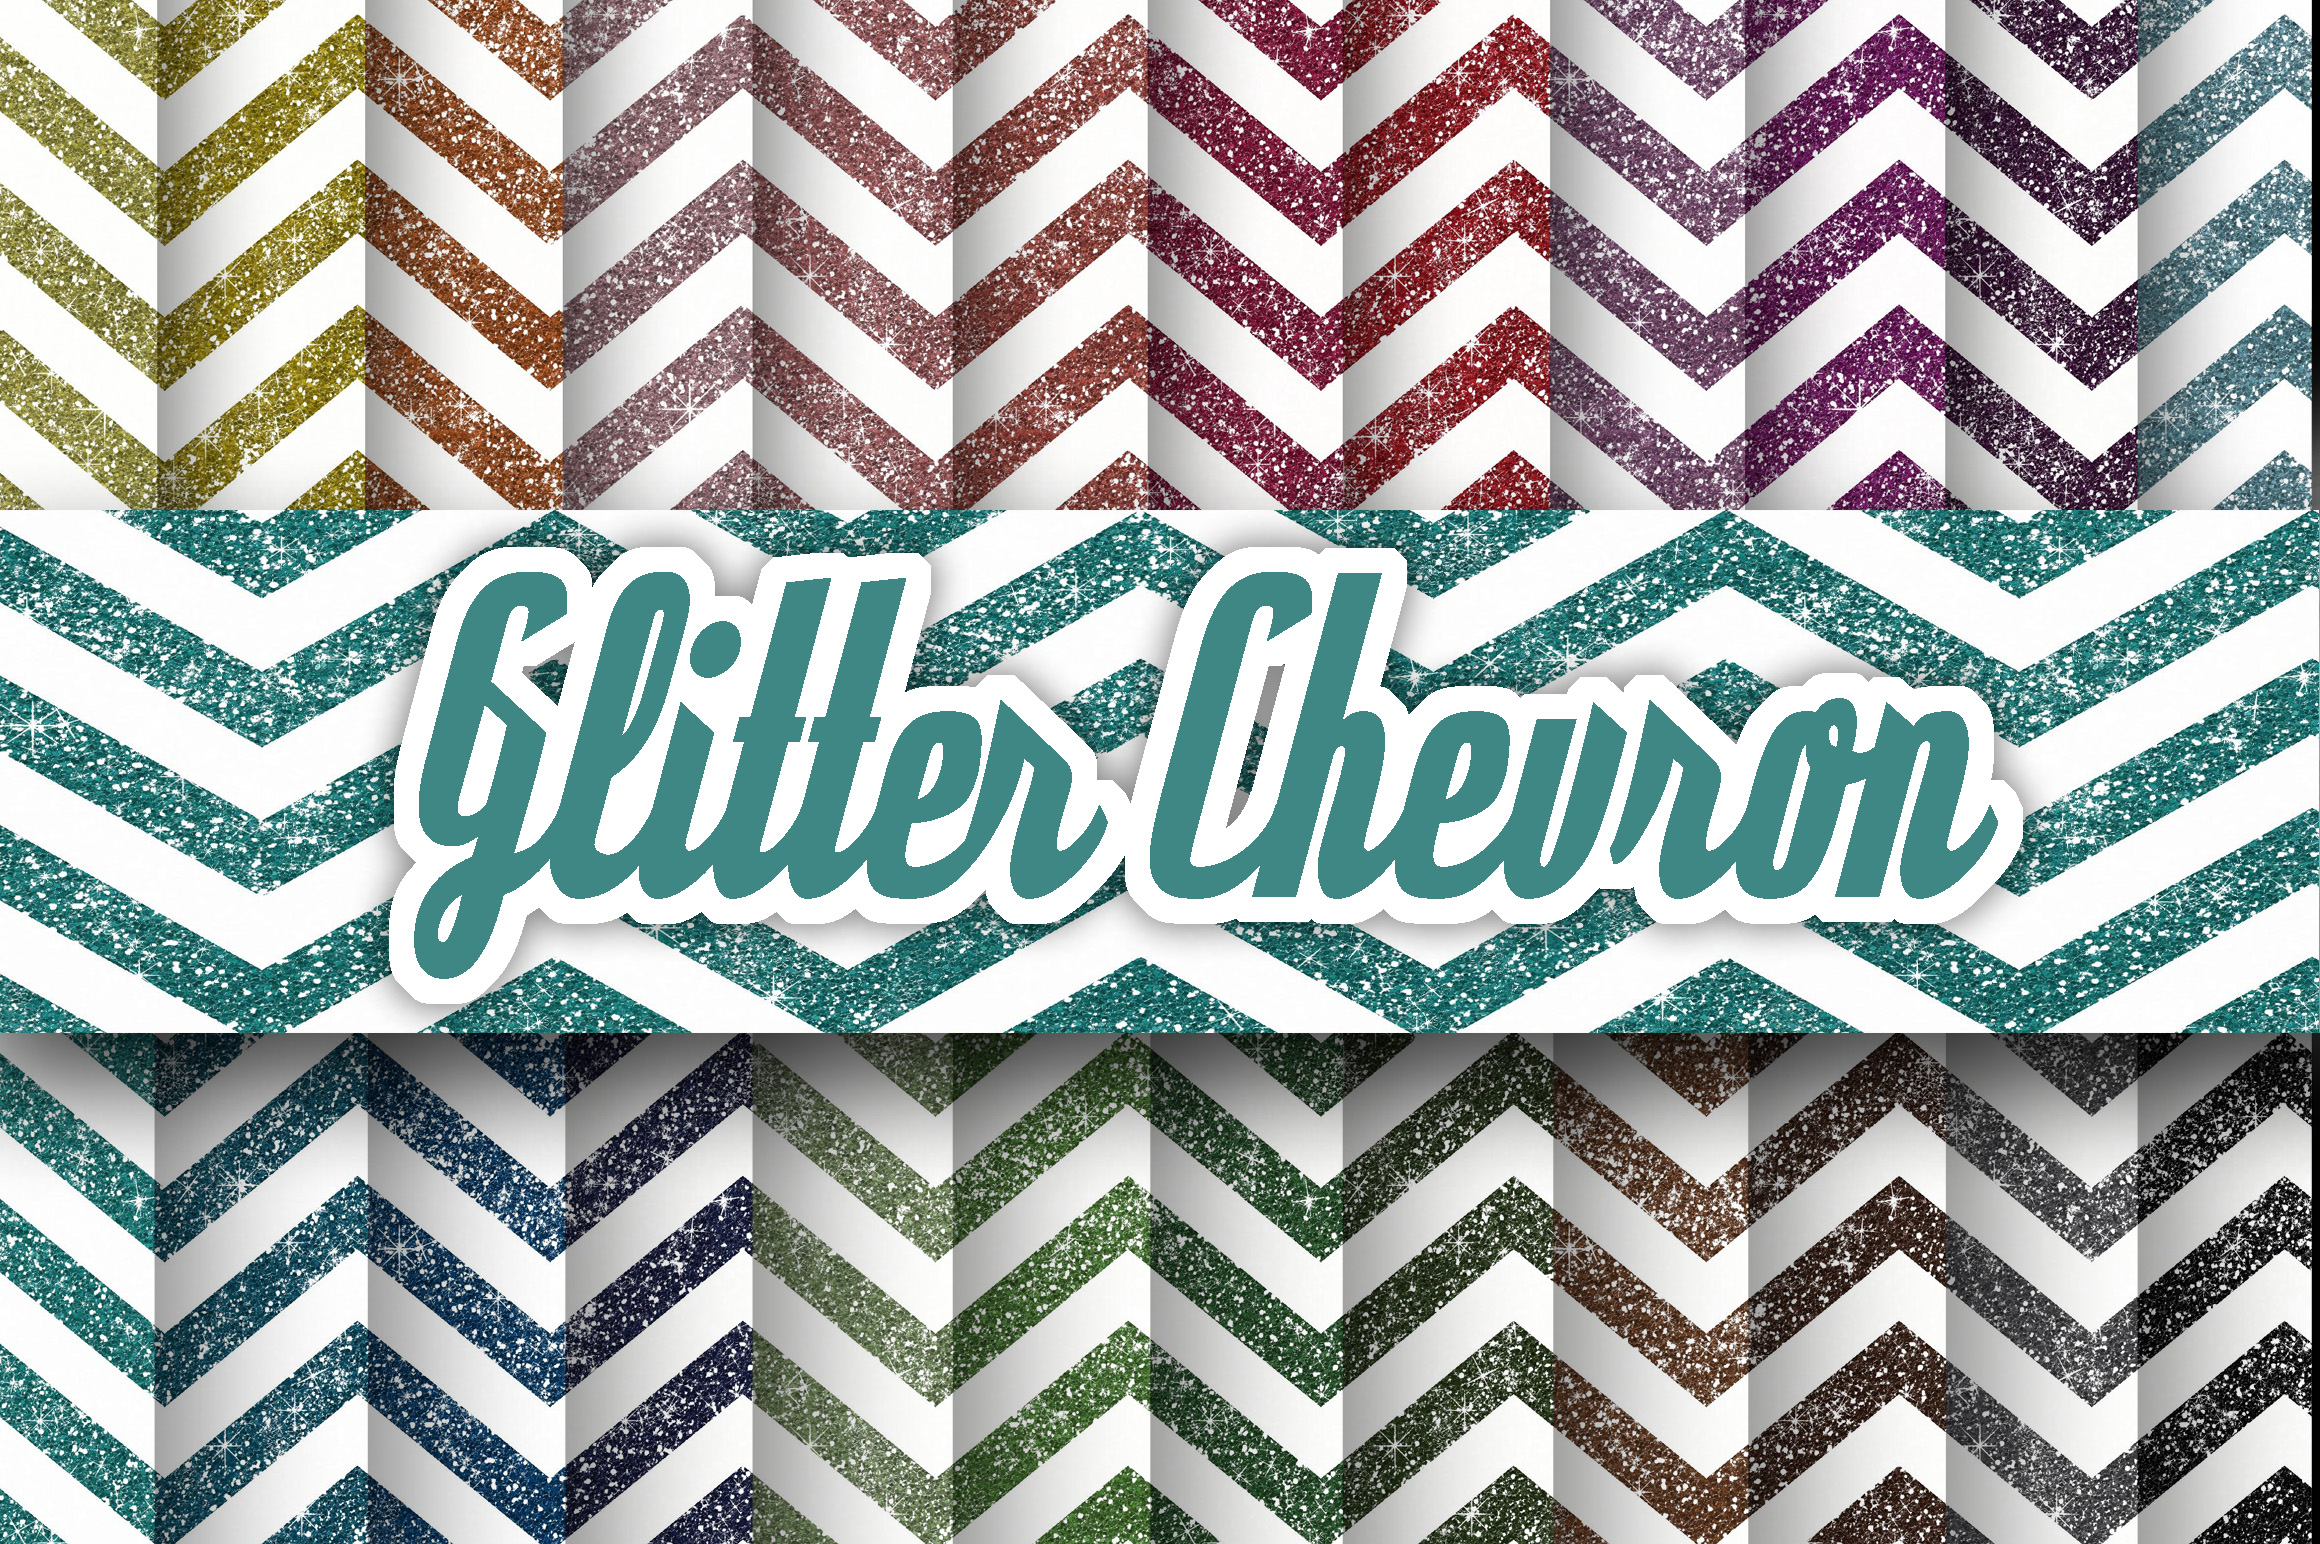 Glitter Chevron Textures Digital Paper Graphic Backgrounds By oldmarketdesigns